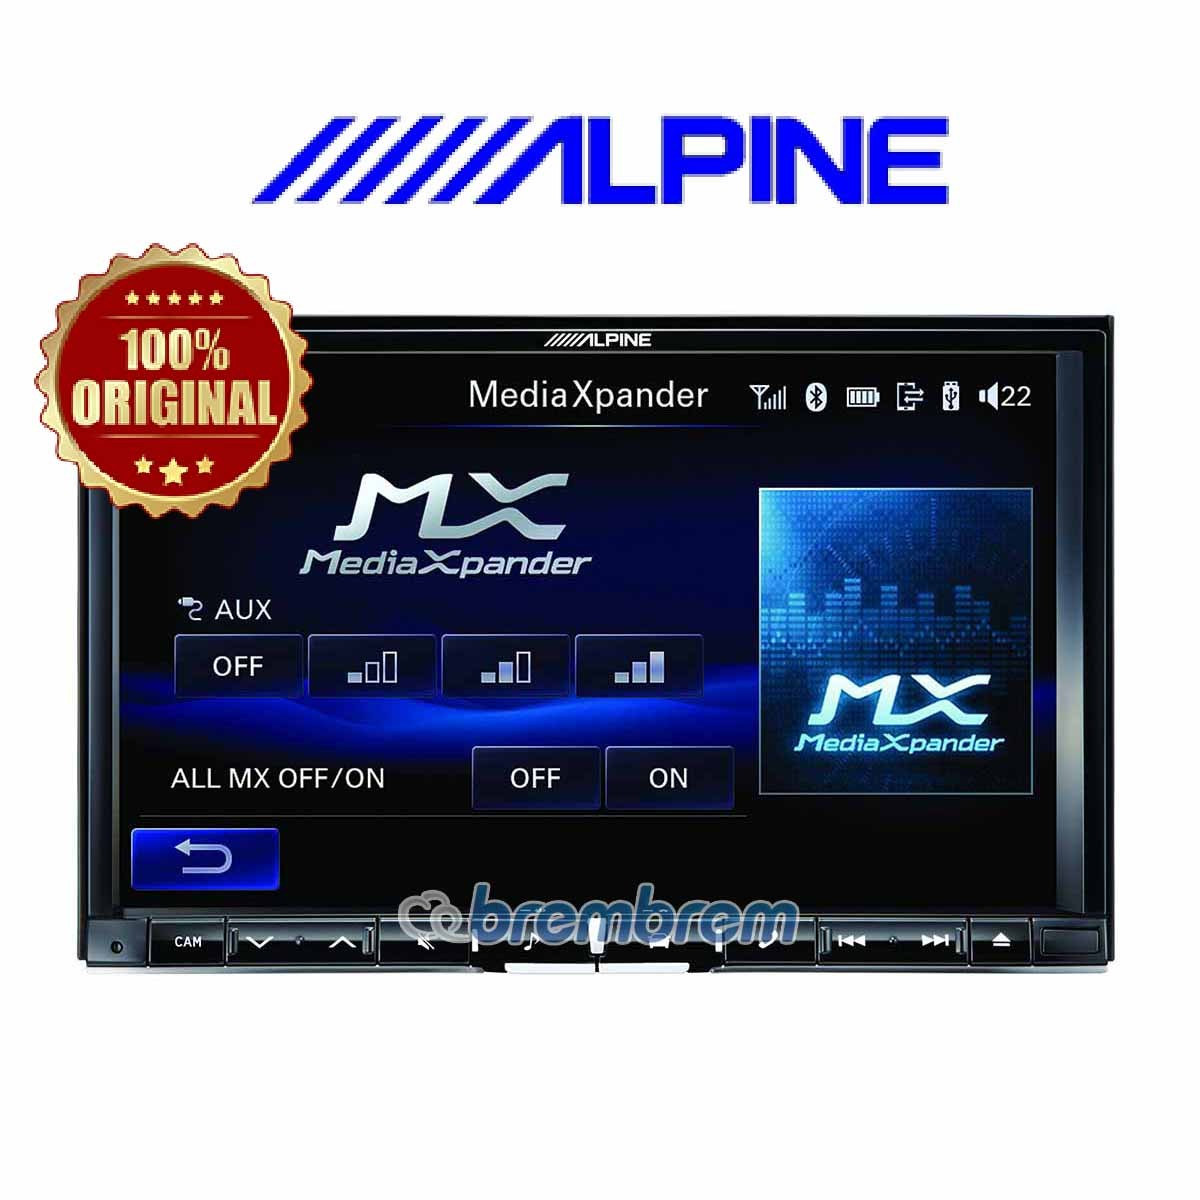 ALPINE 108ED - HEADUNIT DOUBLE DIN